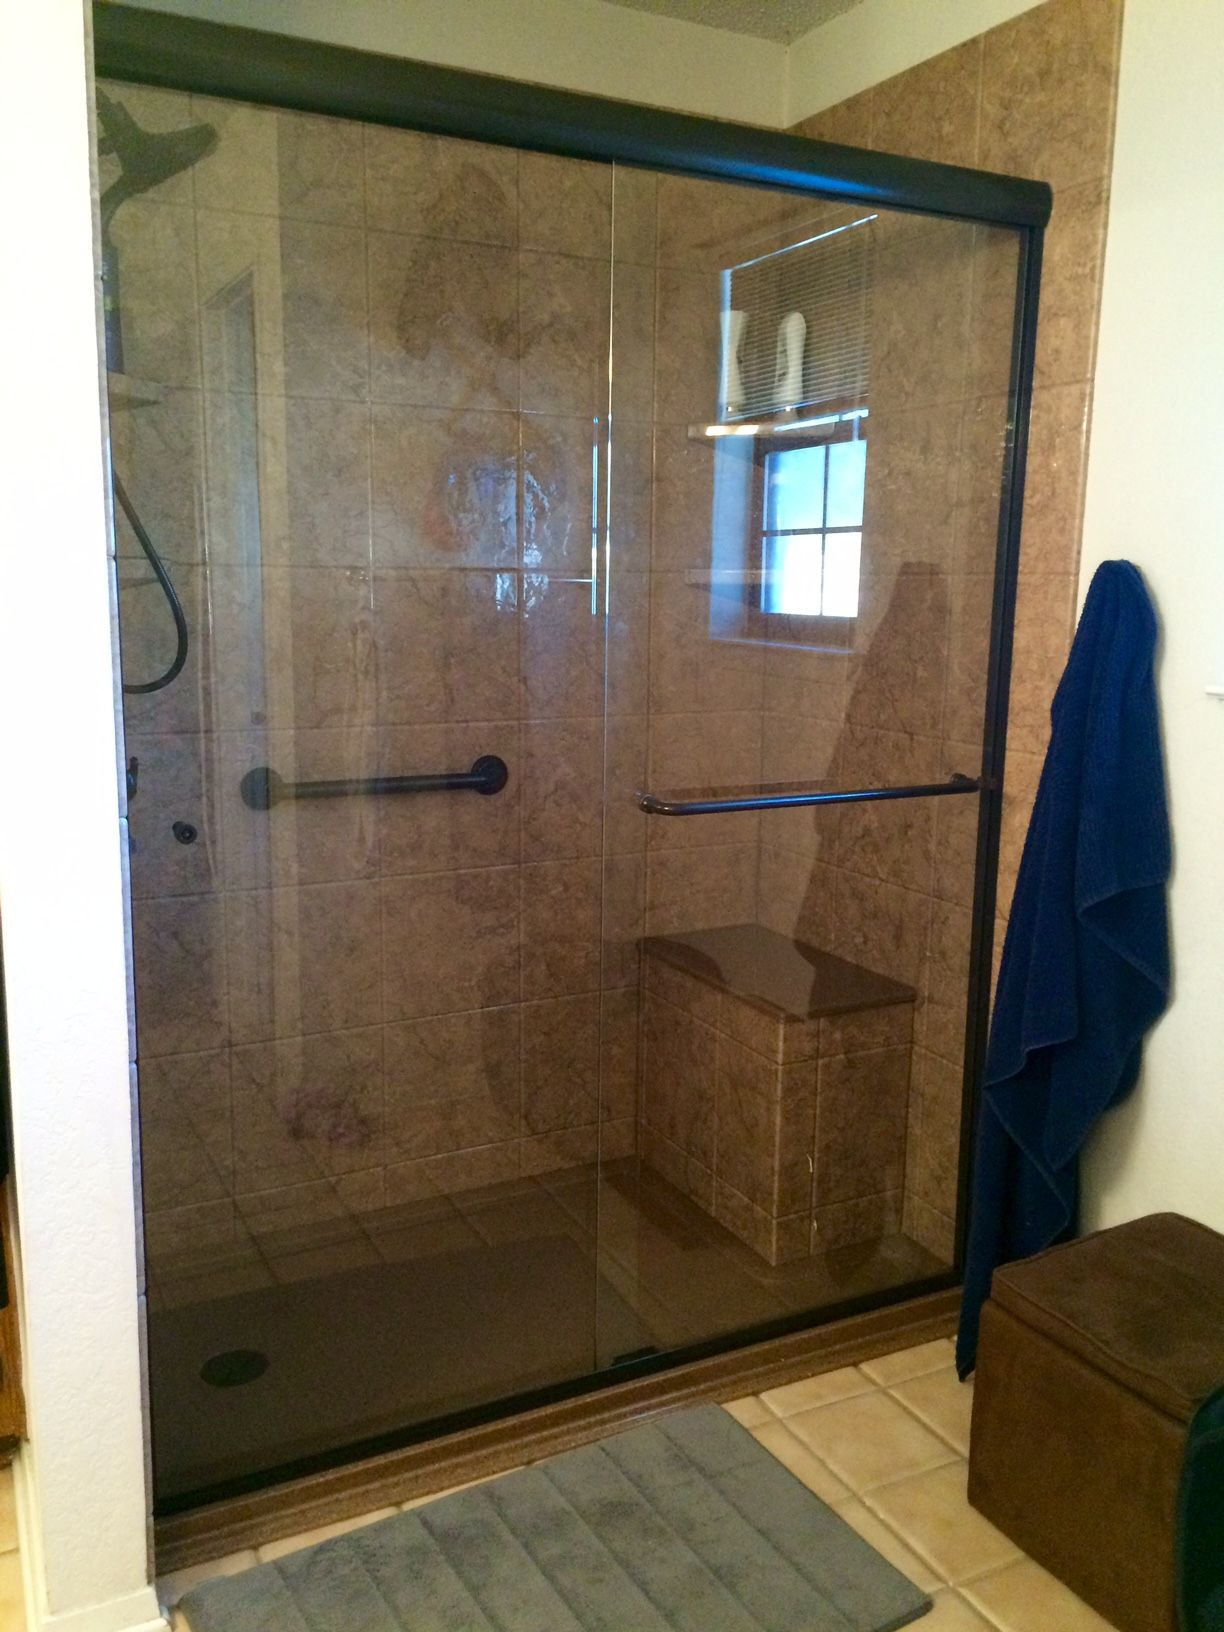 Rebath 12 Tile Venetian Stone Wall System With Custom Onyx Collection Bench Seat And Sliding Glass Door Sliding Glass Door Shower Seat Sliding Shower Door